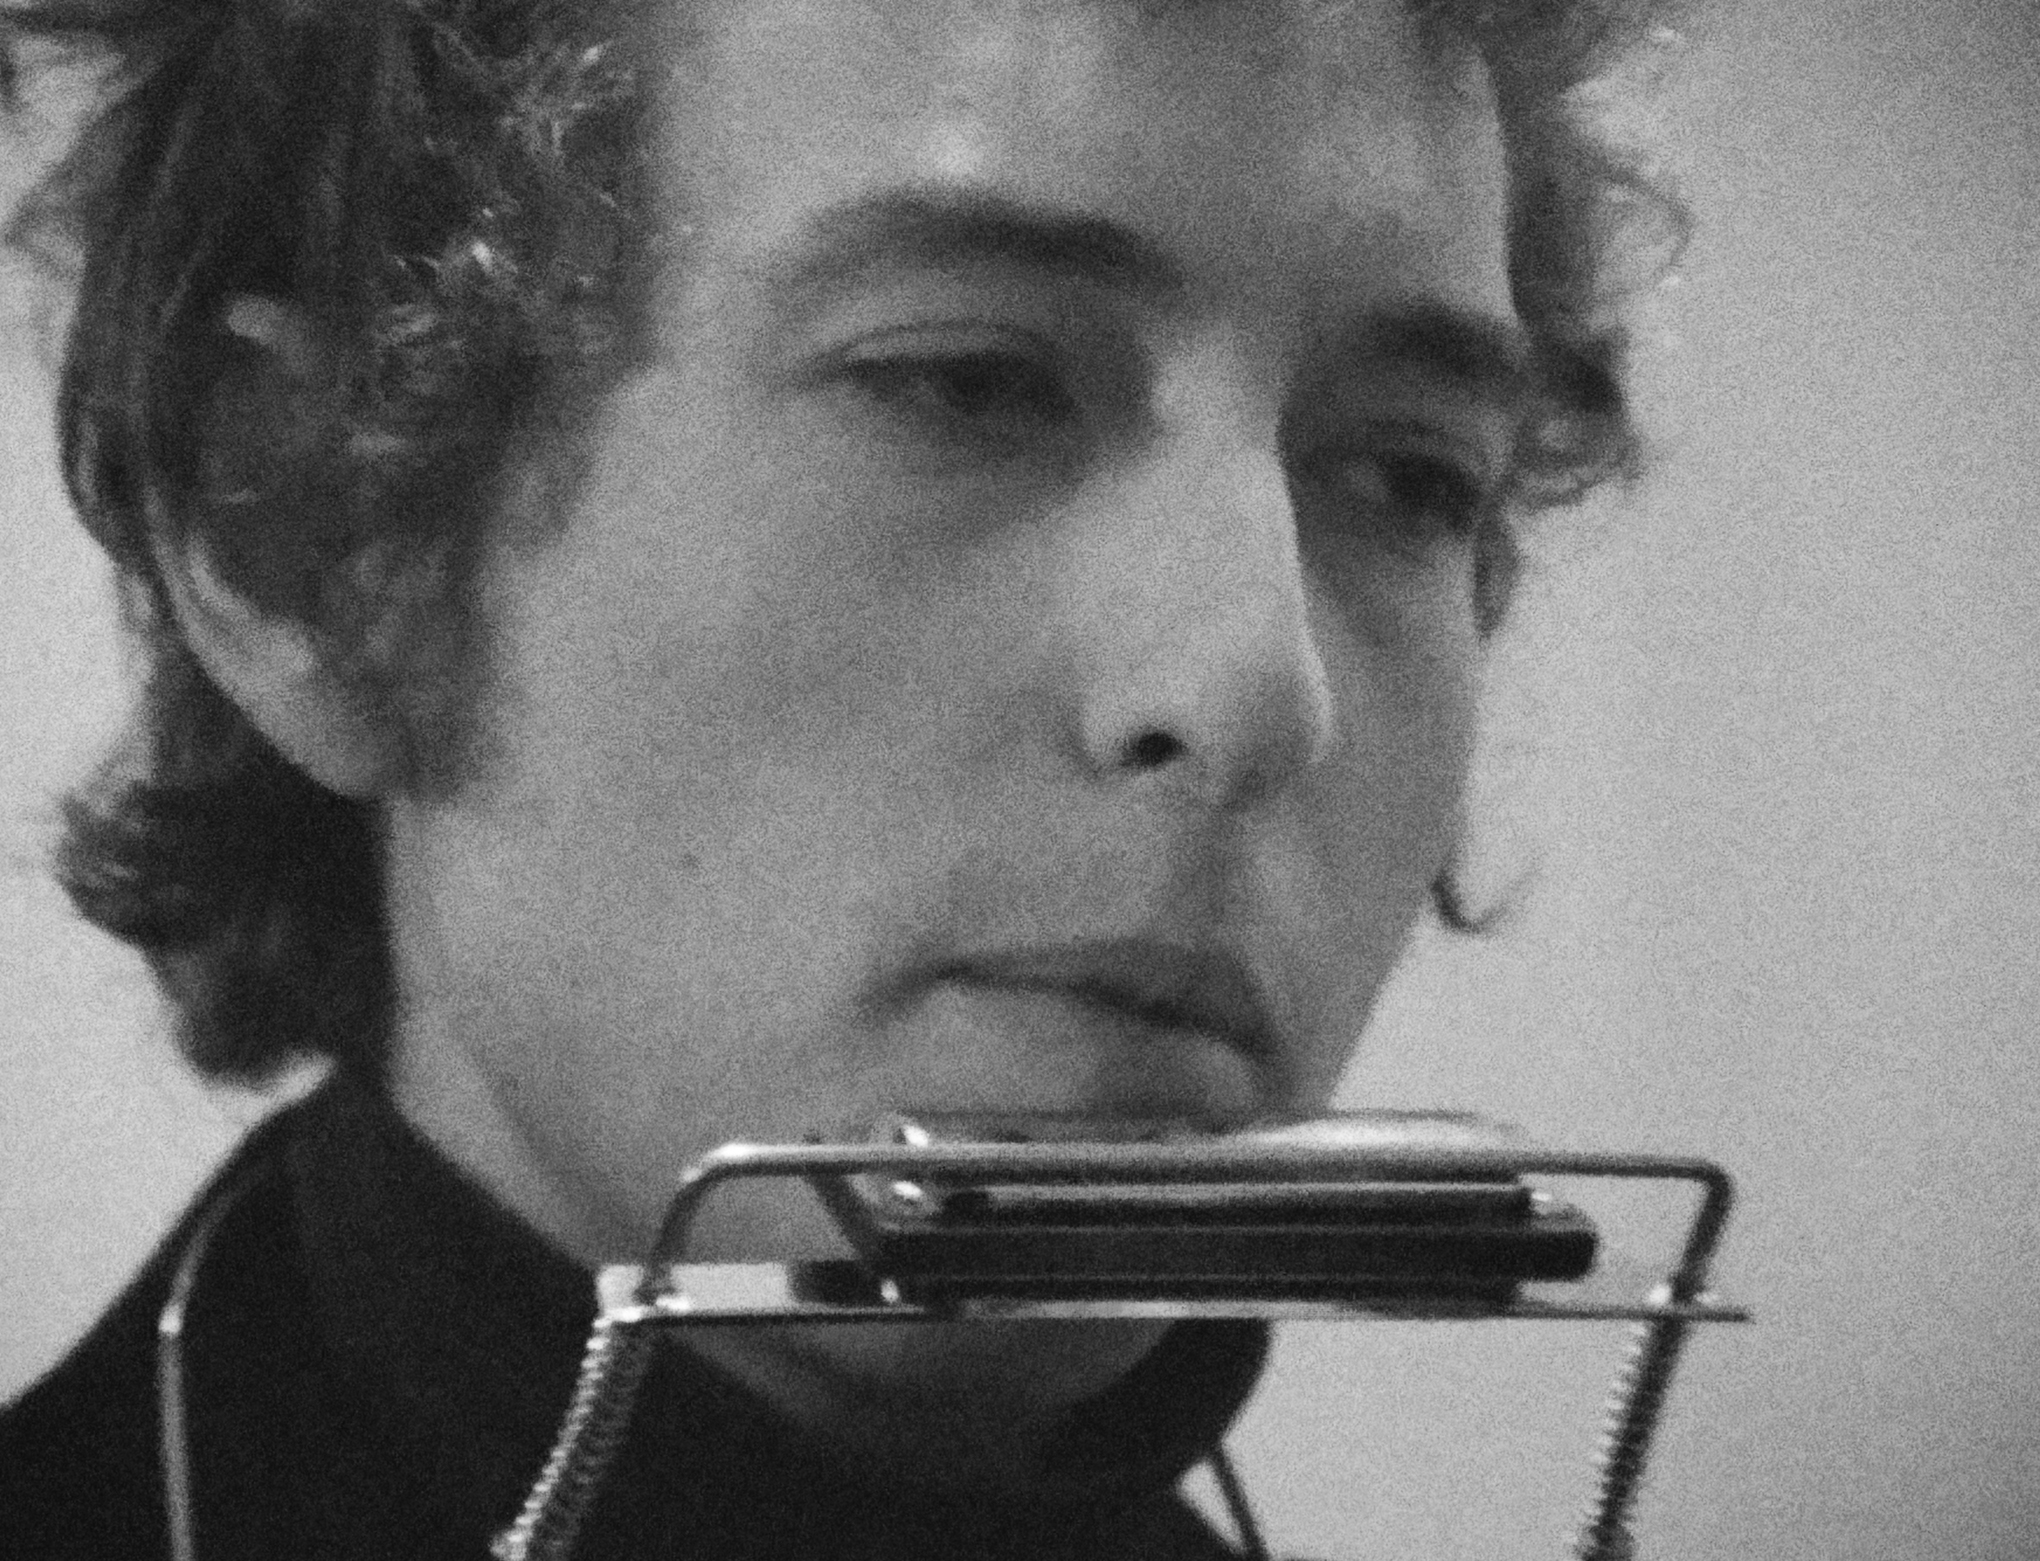 Bob Dylan backstage at Newcastle City Hall in London, 1965.